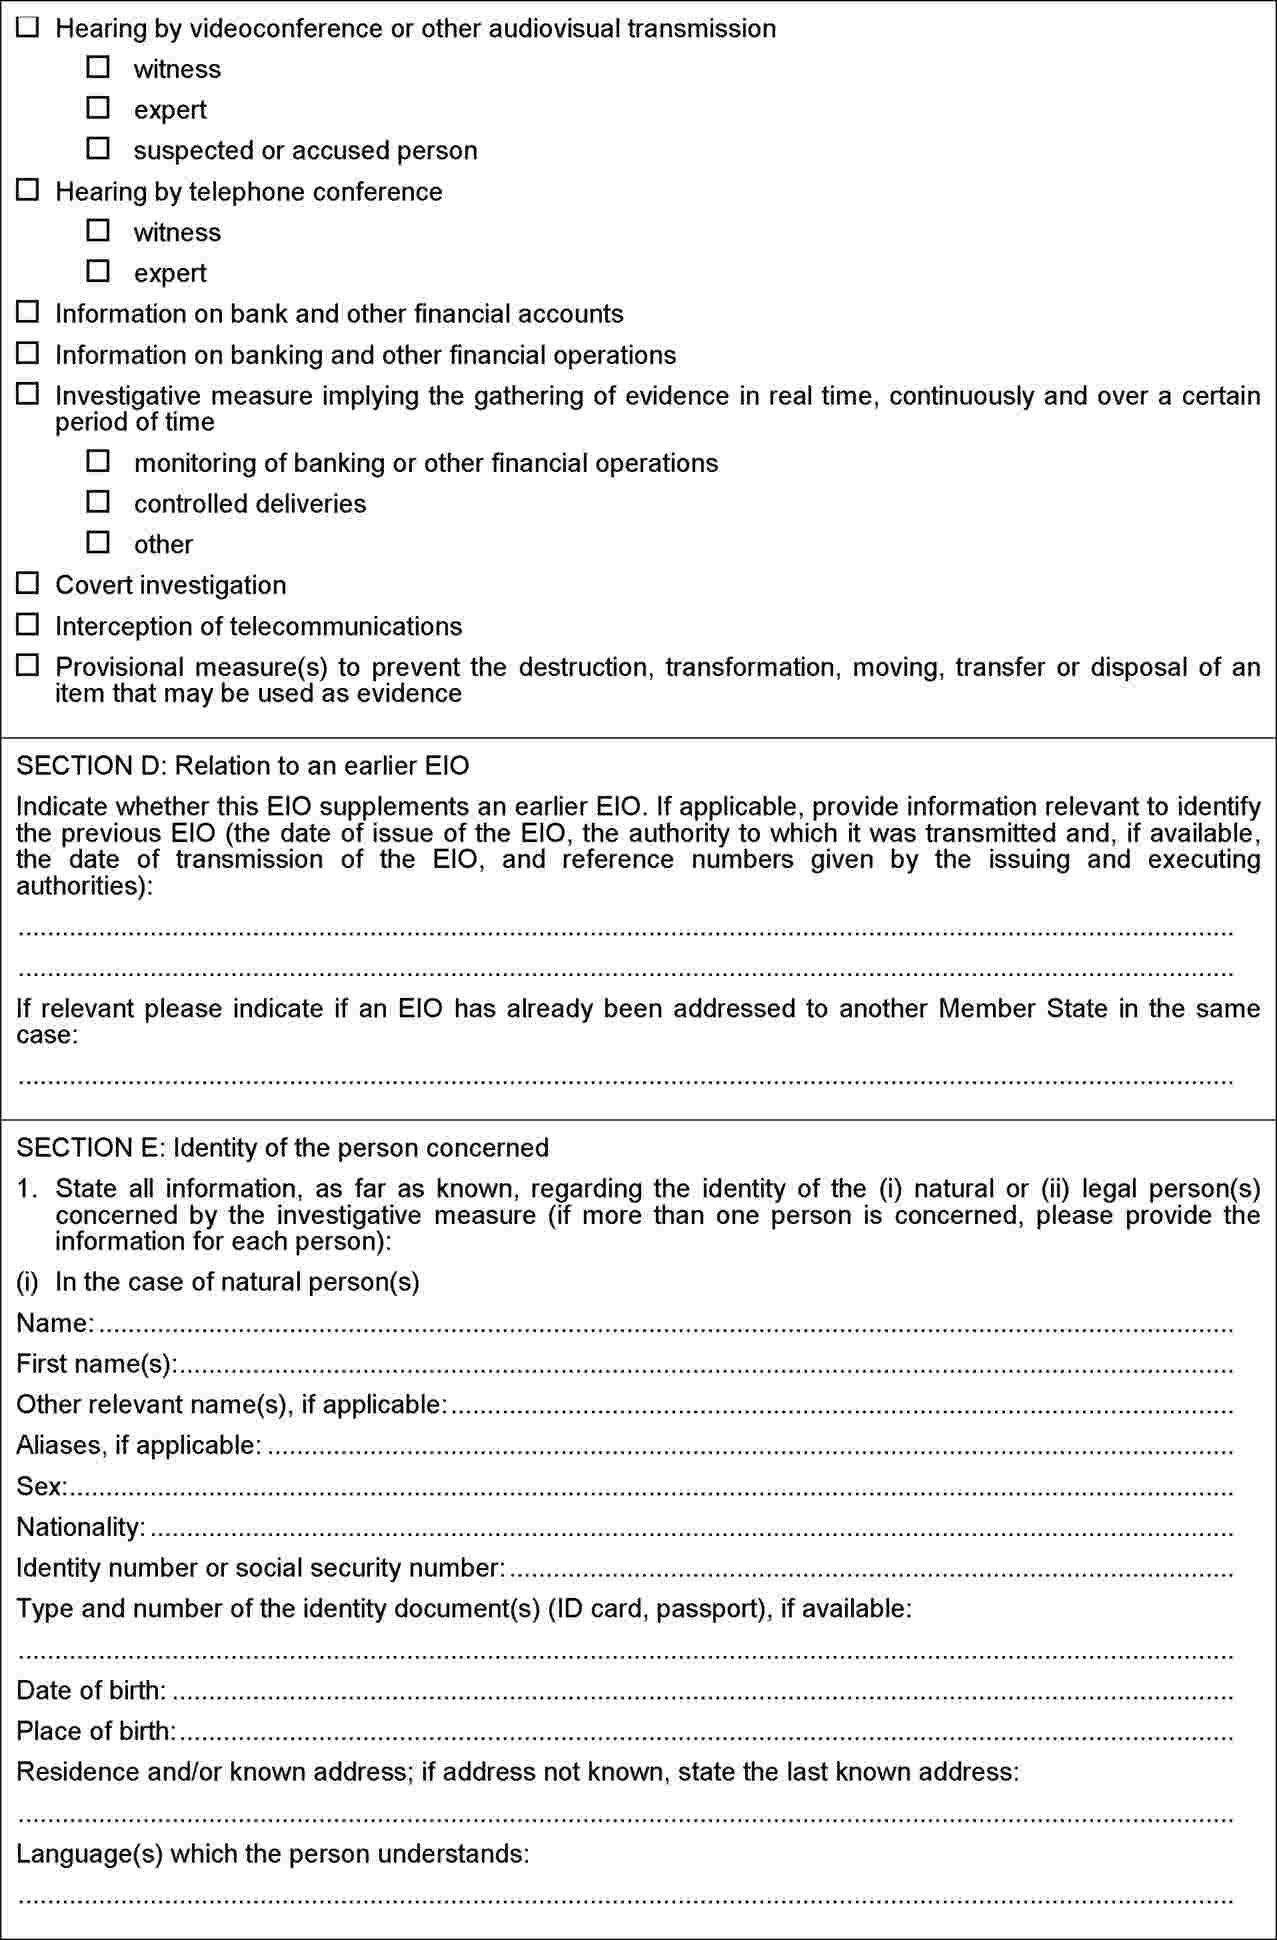 hight resolution of Apa Citation Worksheet Answer Key   Printable Worksheets and Activities for  Teachers